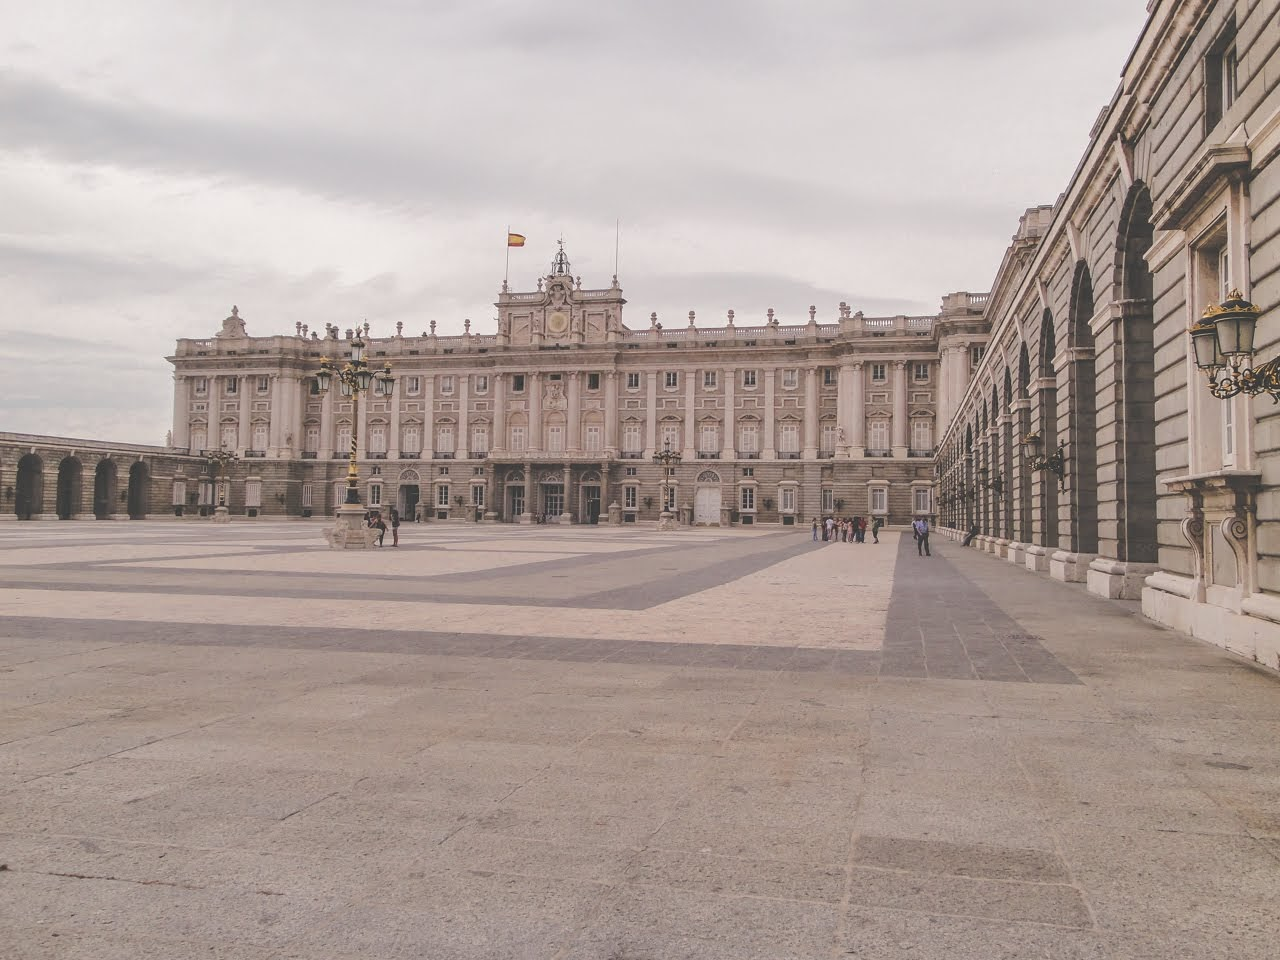 A wide angle shot of El Palacio Real de Madrid